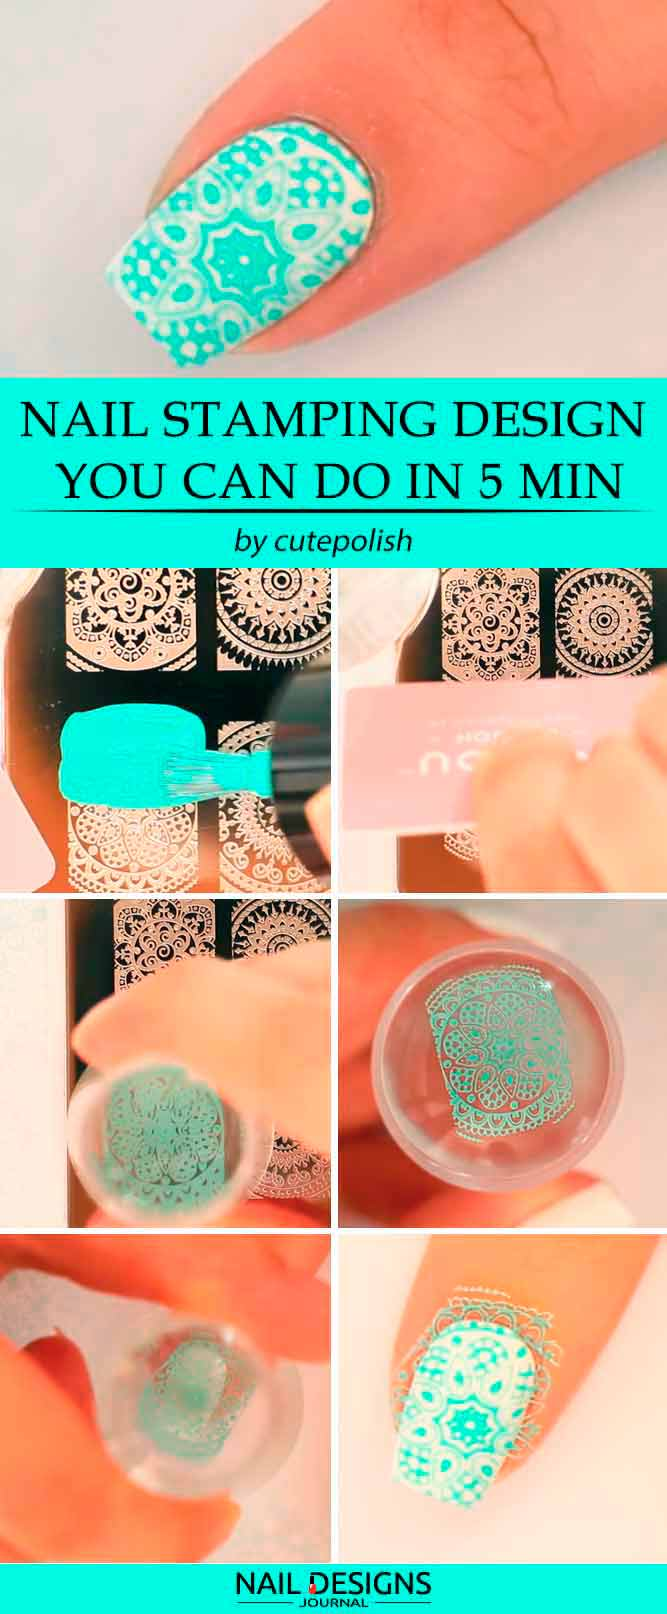 Simple Nail Stamping Design You Can Do In 5 Min